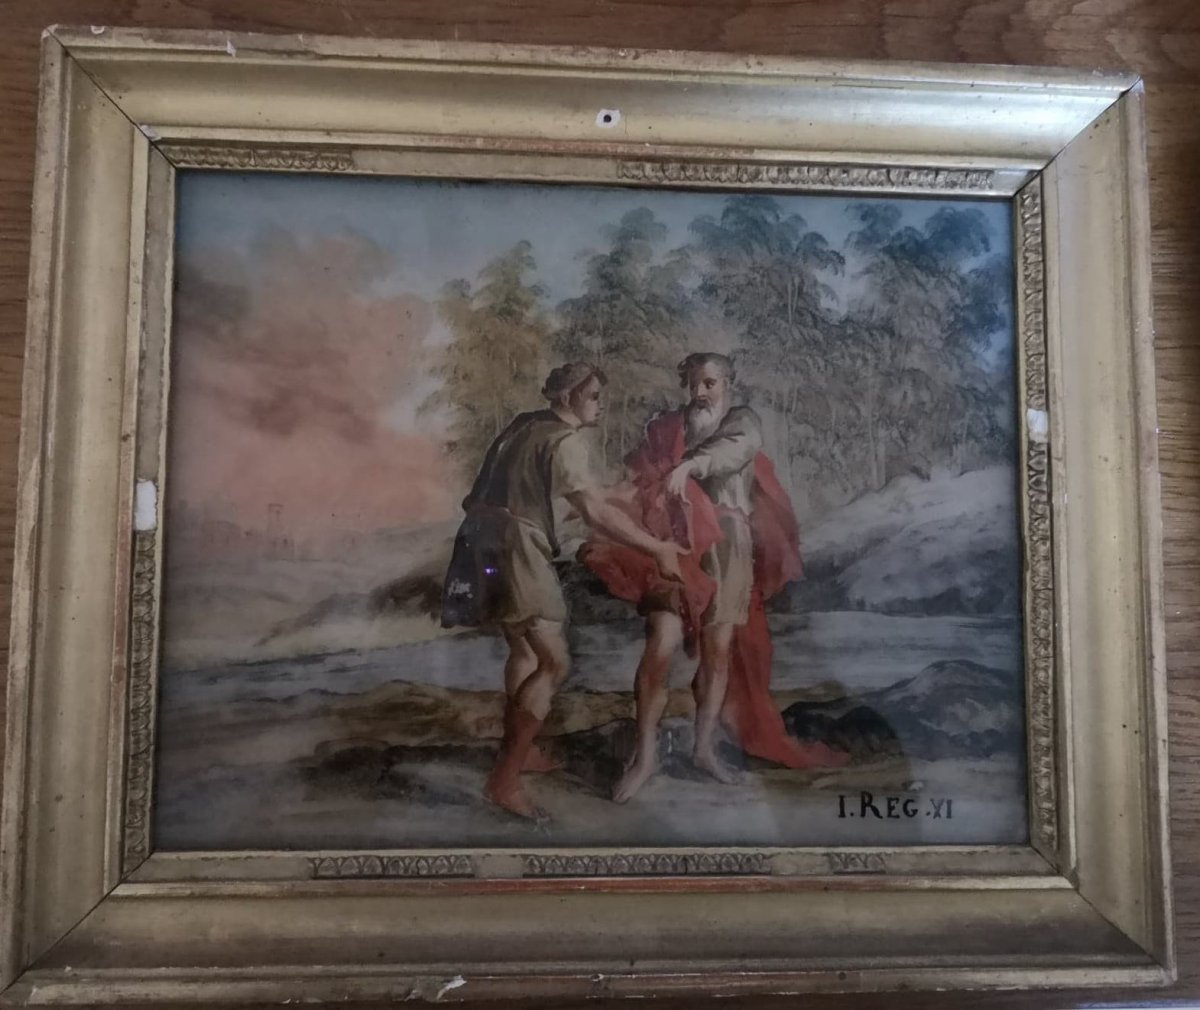 Painting Fixed Under Glass - 2 Characters